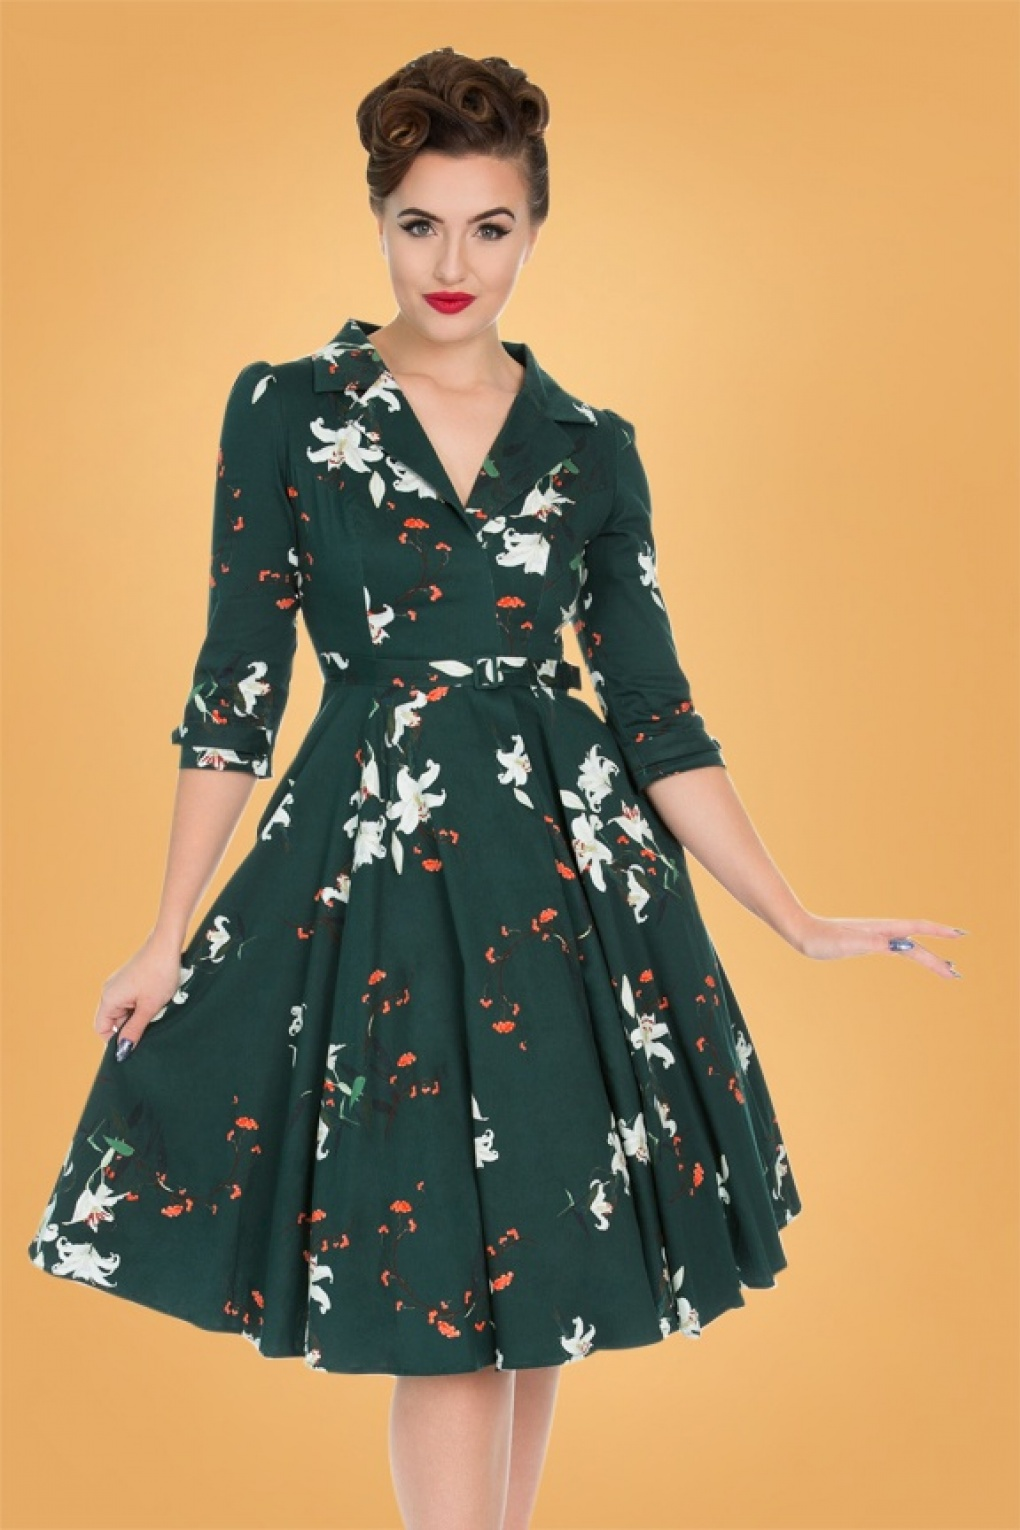 50 Vintage Inspired Clothing Stores 50s Dorothy Lily Flower Swing Dress in Green £52.56 AT vintagedancer.com